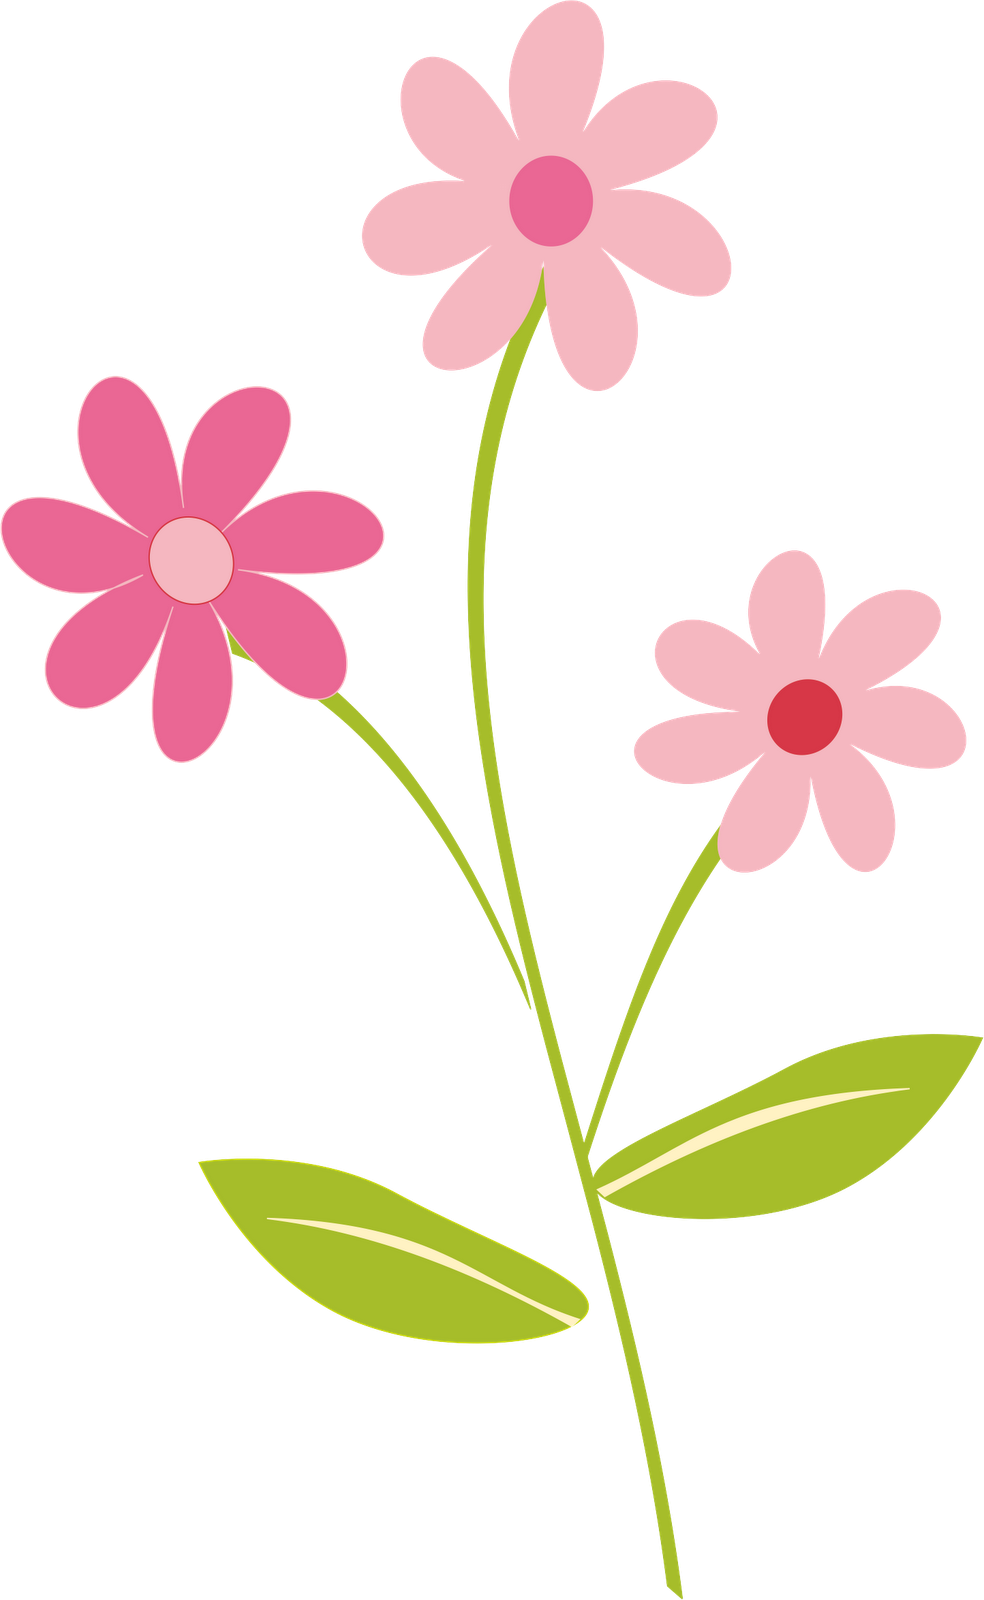 Spring Flowers Clipart at GetDrawings.com.